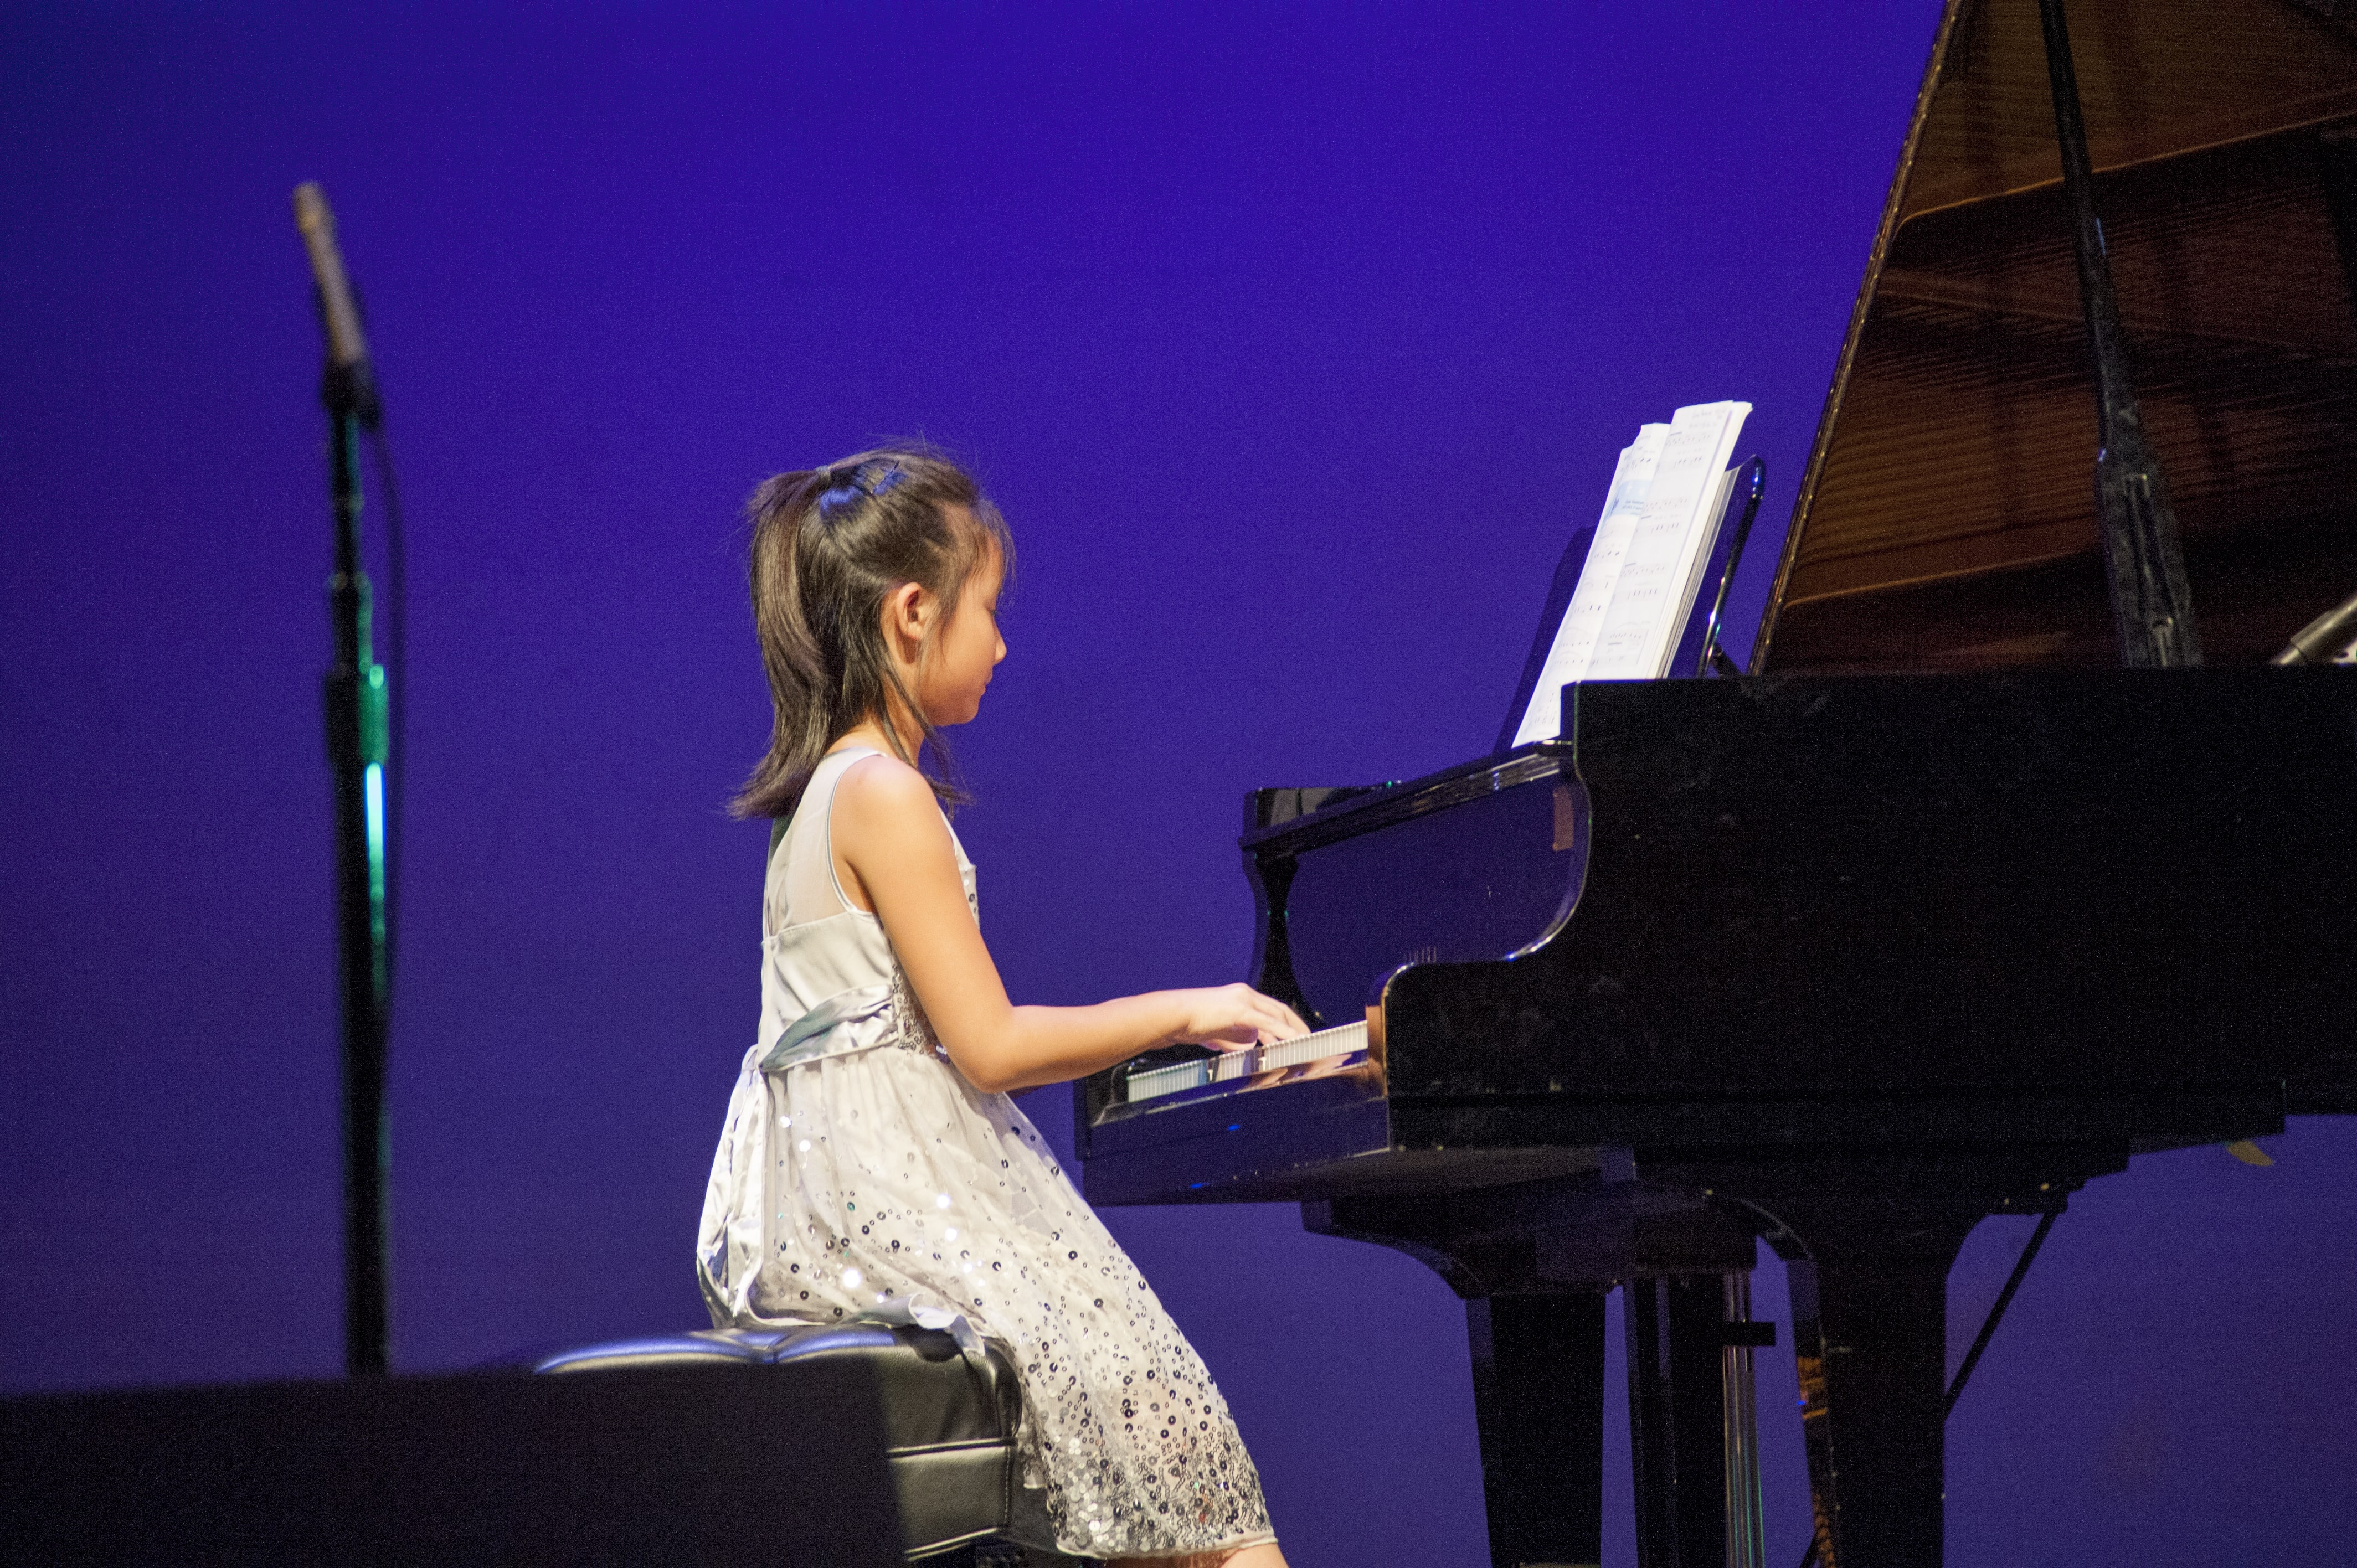 piano lessons for kids and adults near me in castro valley ca